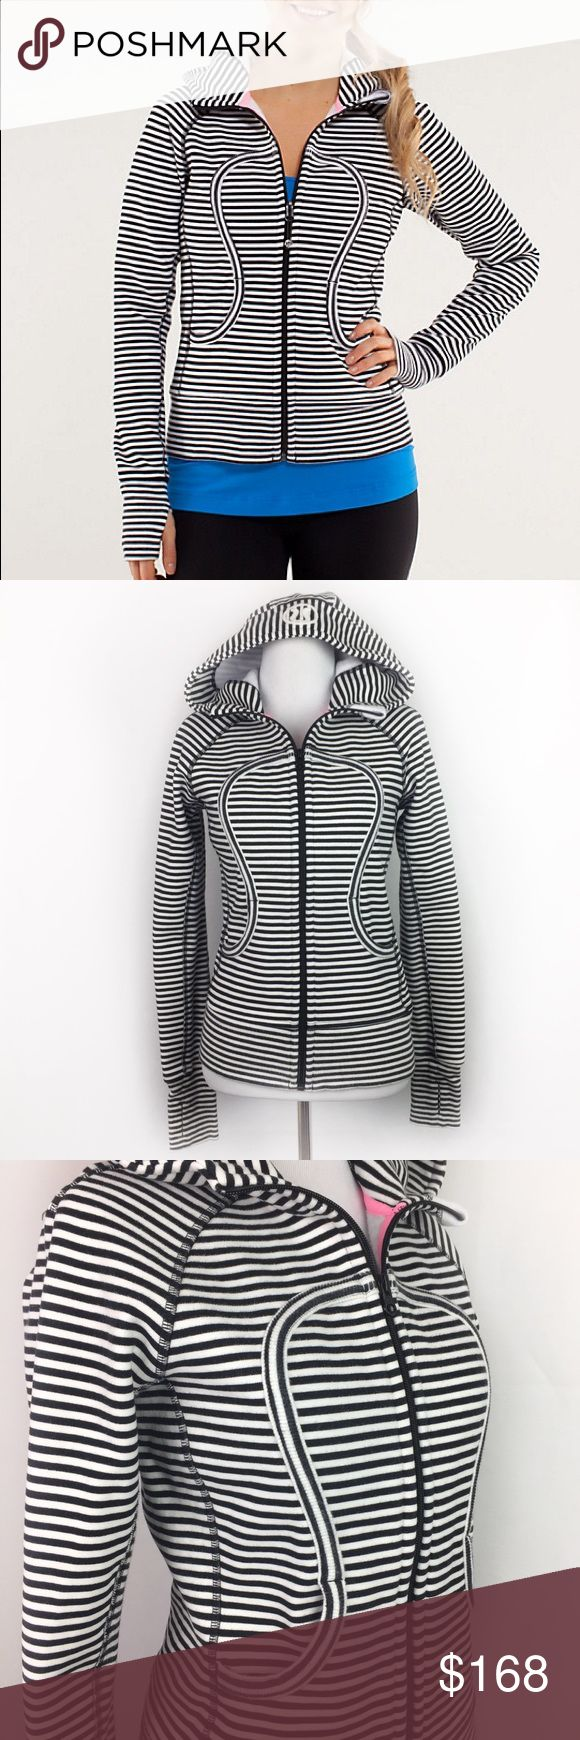 """Lululemon Scuba Zip Up Hoodie Jacket Black Striped •Lululemon Black White Striped Scuba Zip Up Hoodie Jacket •Women's Size 4 •In excellent used condition •Cotton/ Polyester/ Spandex •All measurements are Approximate: 23"""" length, 17"""" across chest, 21"""" sleeve length lululemon athletica Jackets & Coats"""